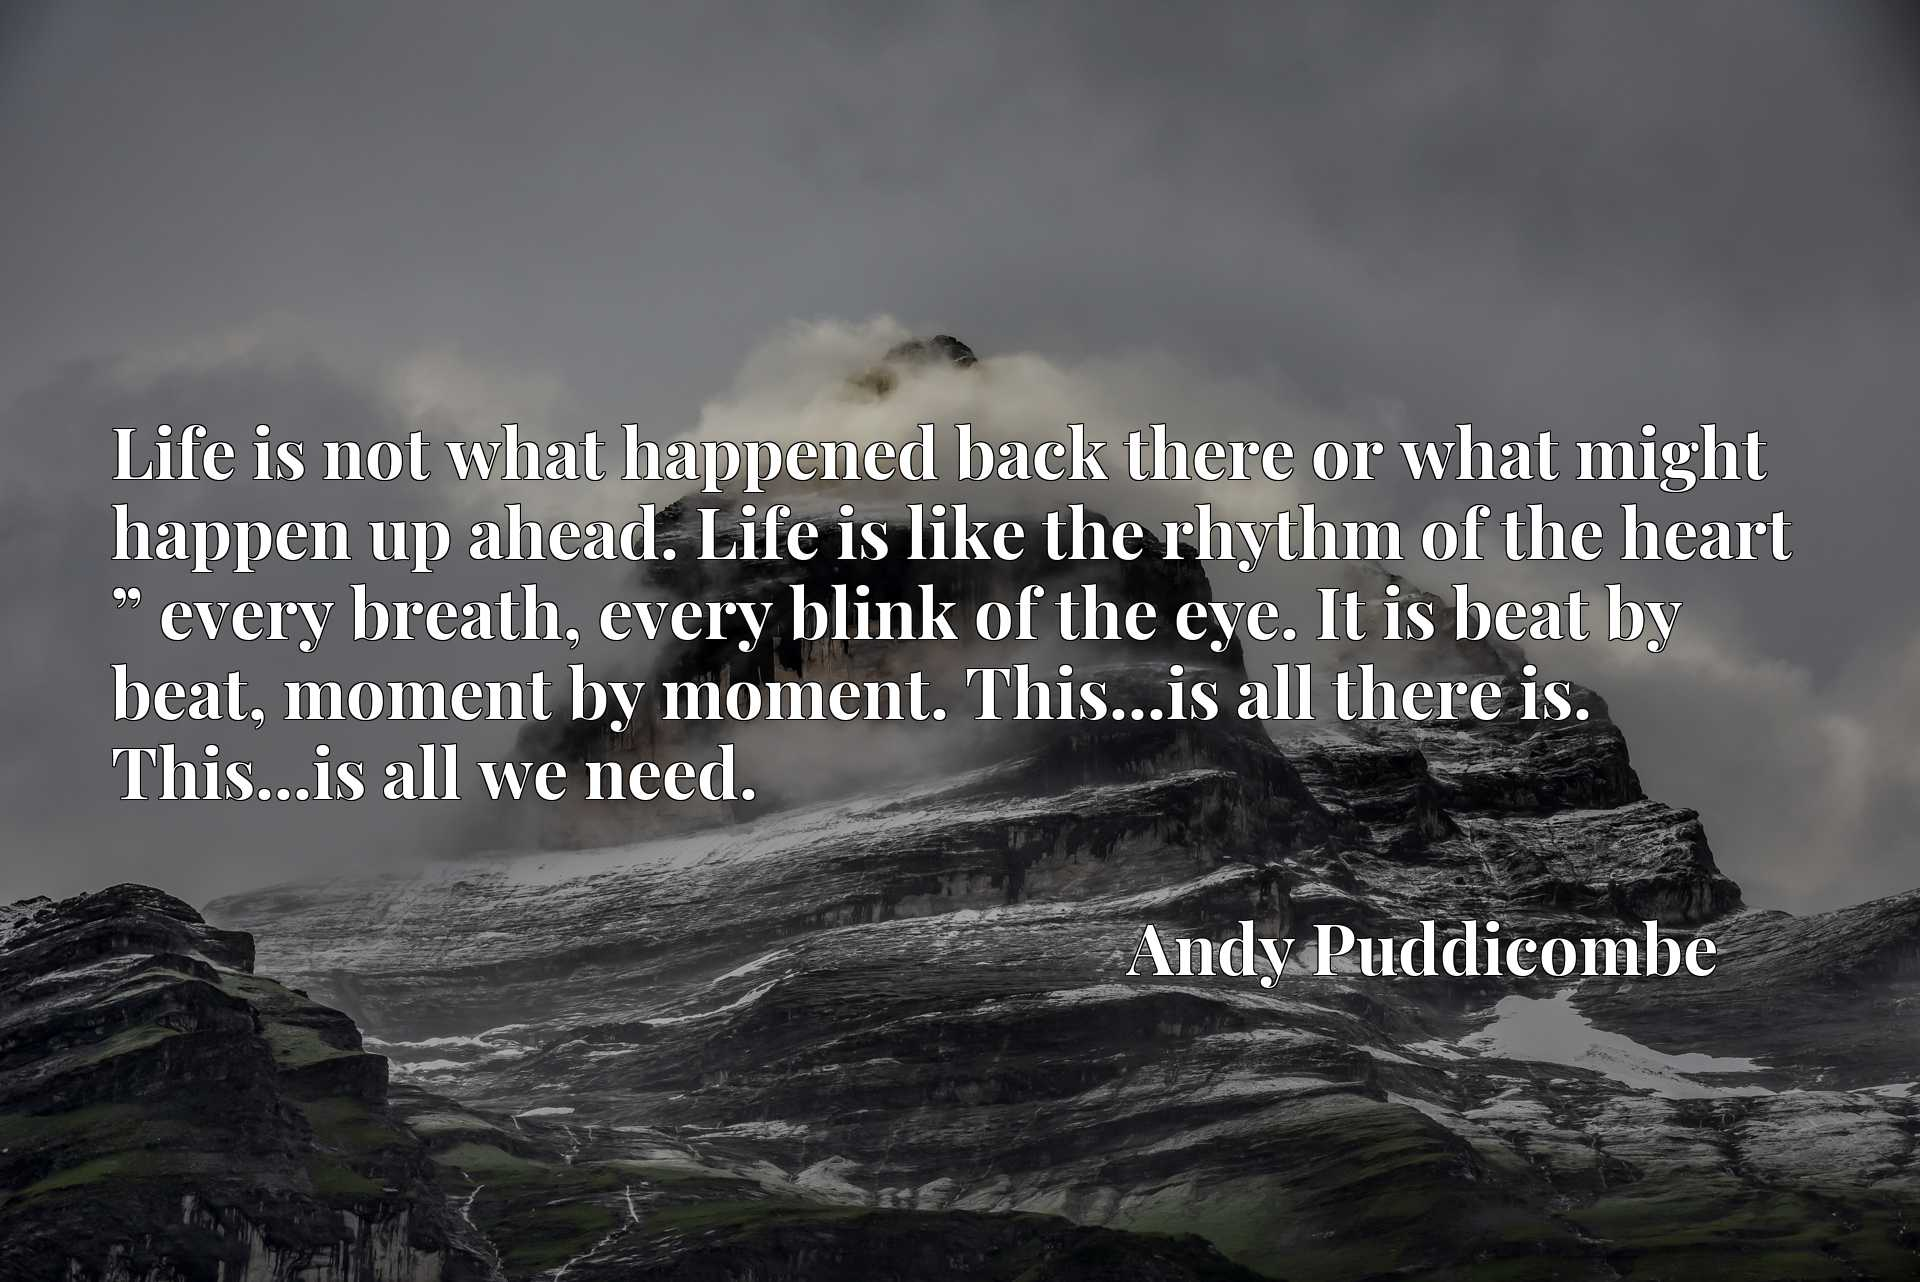 """Life is not what happened back there or what might happen up ahead. Life is like the rhythm of the heart """" every breath, every blink of the eye. It is beat by beat, moment by moment. This...is all there is. This...is all we need."""